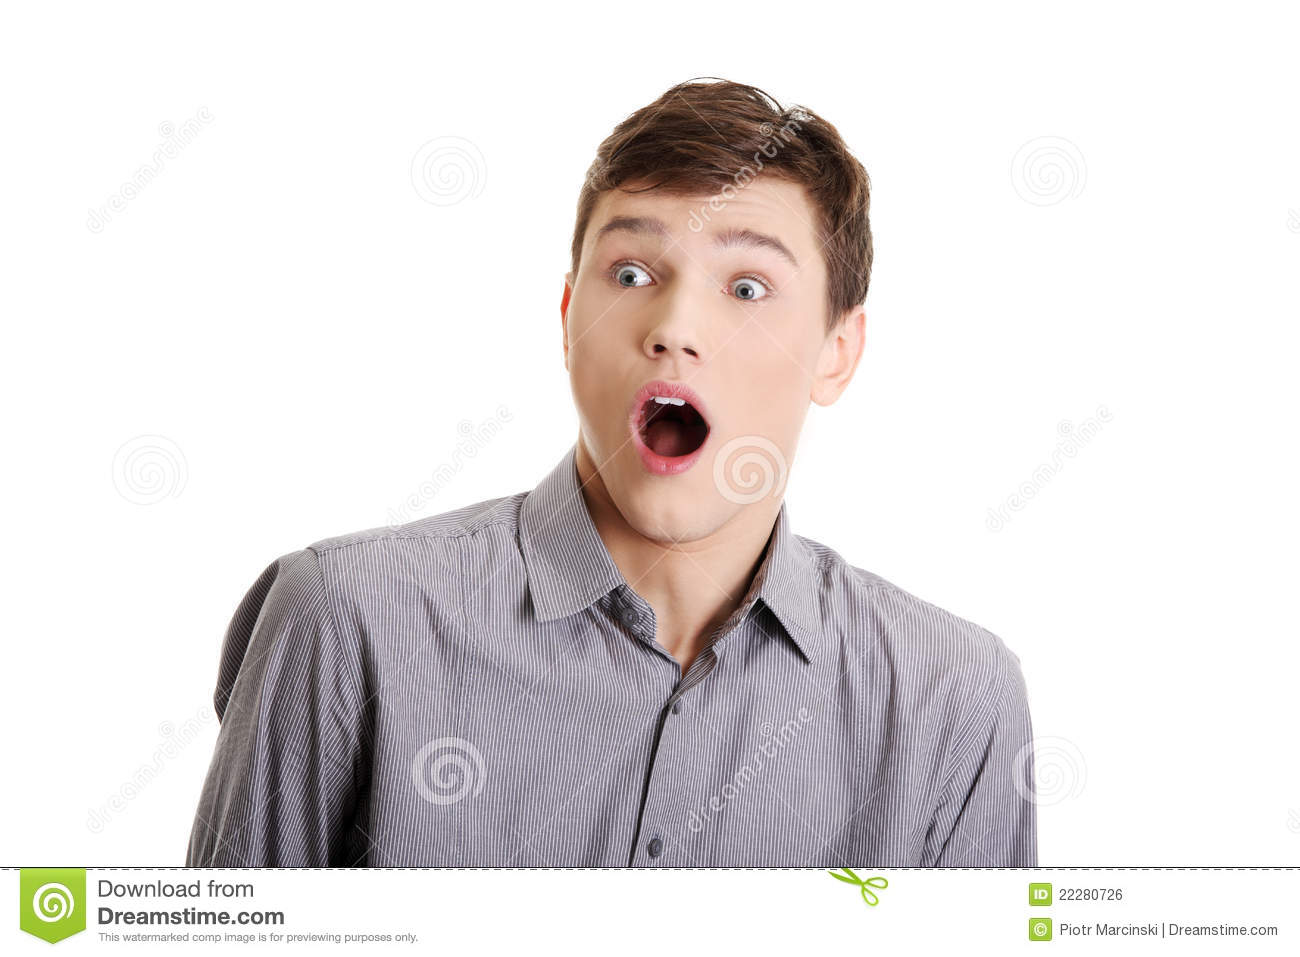 Royalty Free Stock Image Shocked Man Image22280726 likewise Stock Photo Teen Boy Screaming Frustration Portrait Isolated White Background Image44589341 also Beware Sharks Are On The Rise Near East Coast besides Stephen Hawking Childhood also Royalty Free Stock Image Macro Child Teeth Little Human Baby Mouth Image36495606. on young boy mouth open